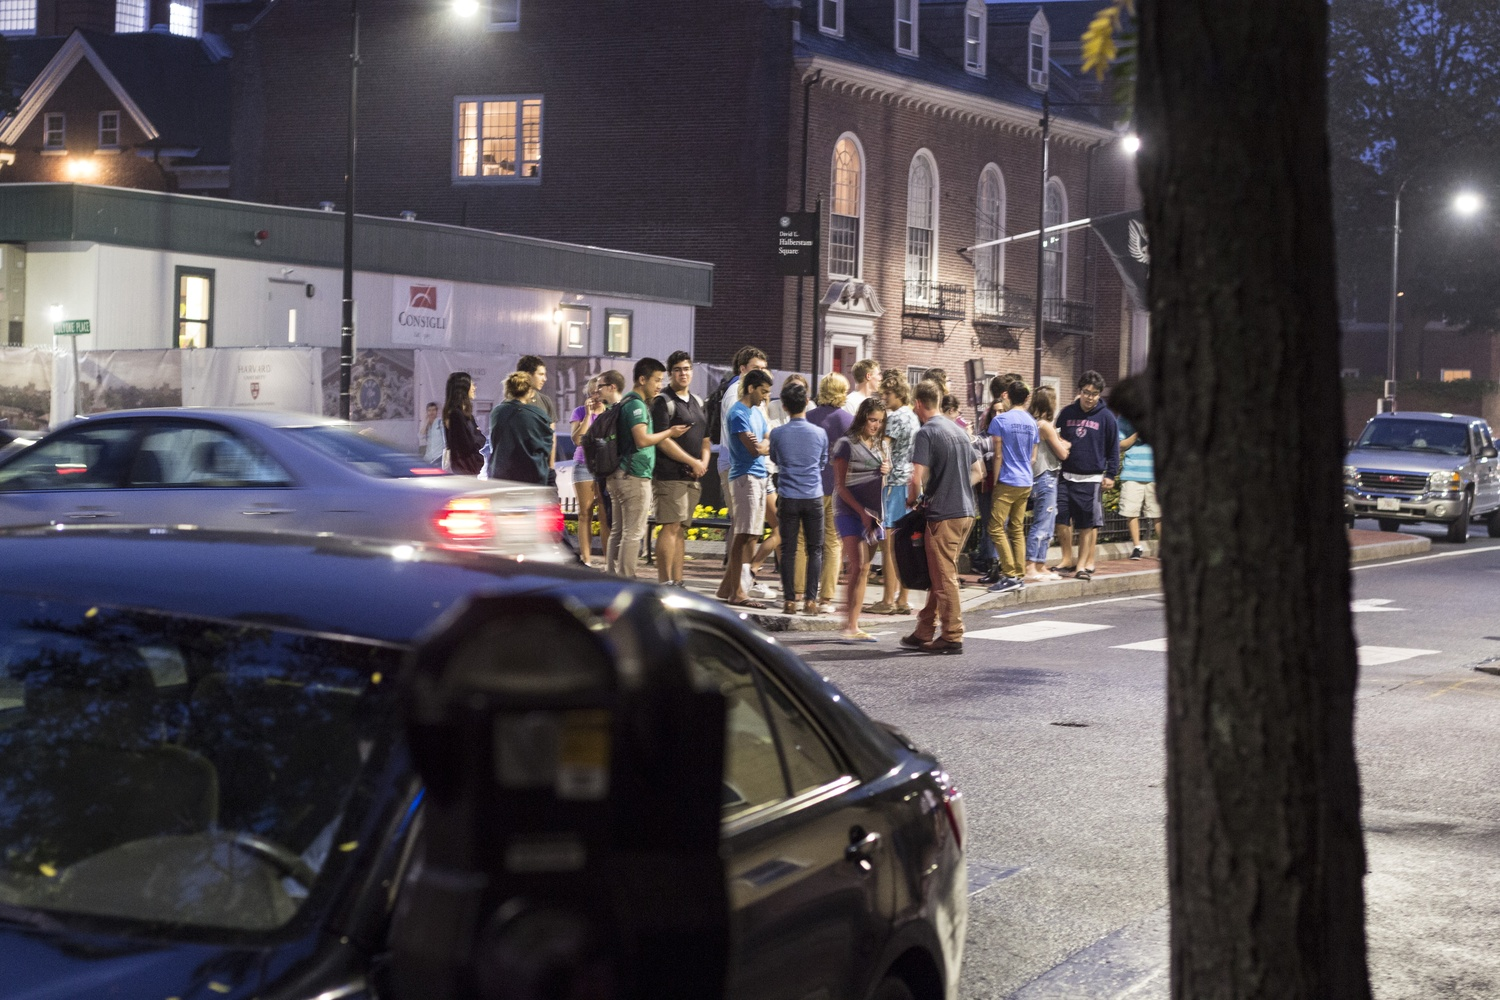 Students gather outside after fire alarms went off in Claverly Hall of Adams House Wednesday night.